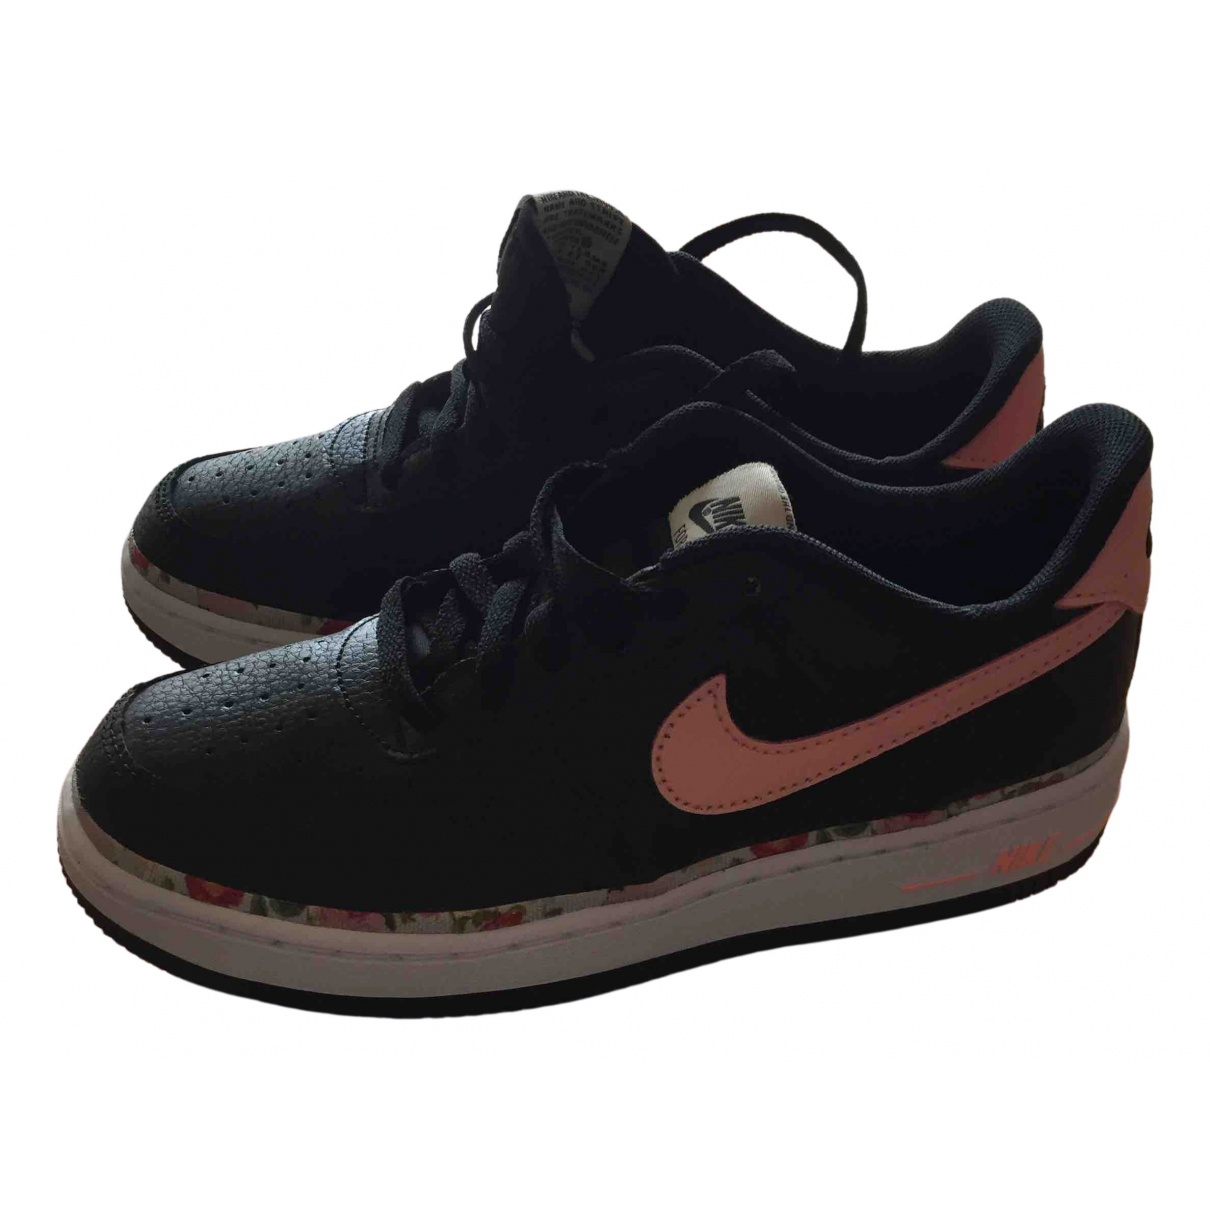 Nike Air Force 1 Black Leather Trainers for Kids 35 FR